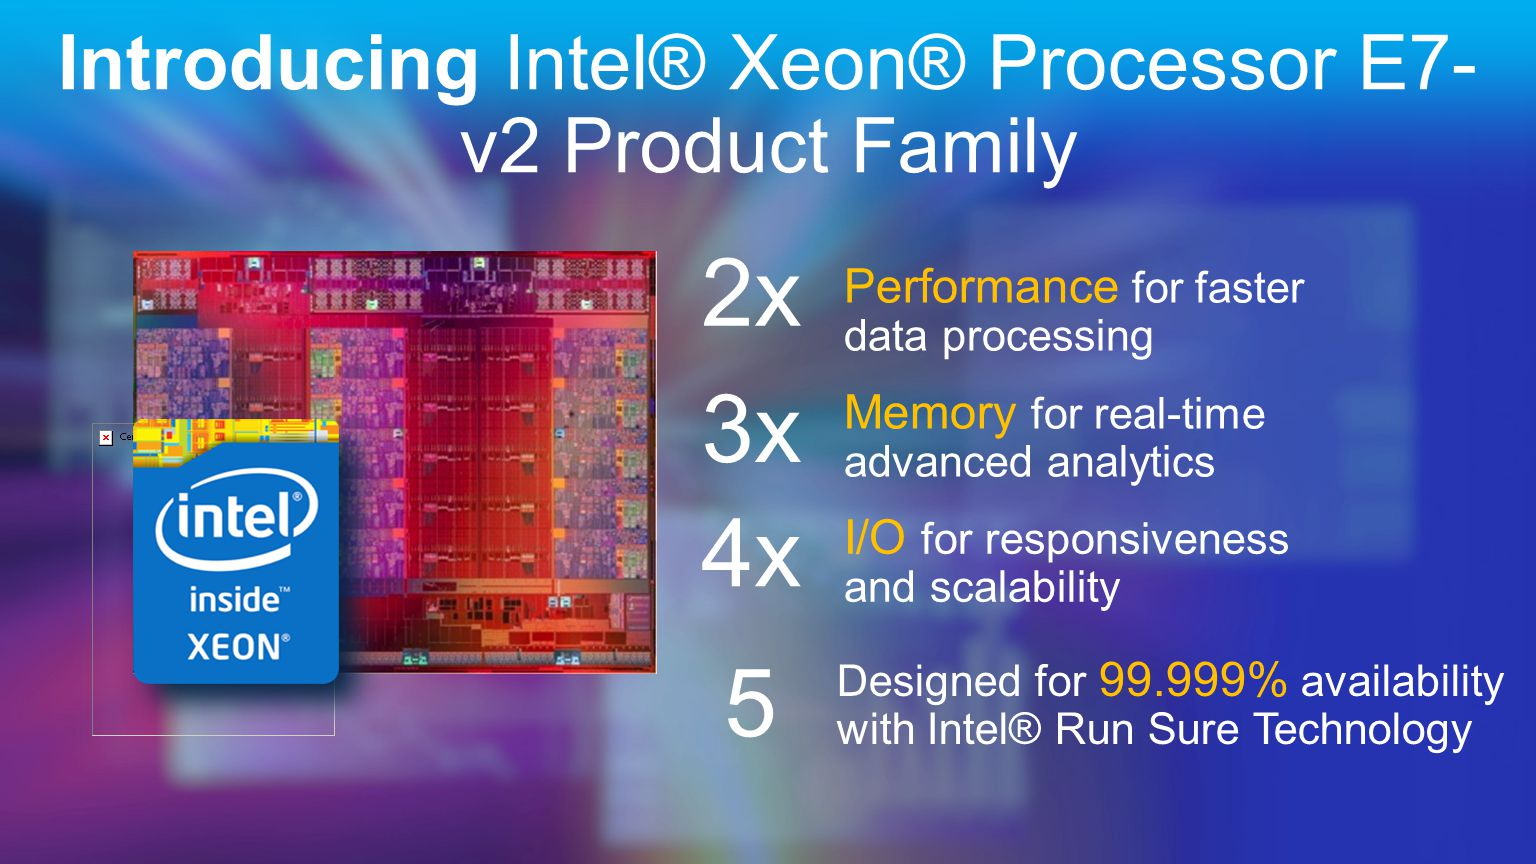 Introducing Intel® Xeon® Processor E7- v2 Product Family Performance for faster data processing Memory for real-time advanced analytics I/O for responsiveness and scalability Designed for 99.999% availability with Intel® Run Sure Technology 5 2x 3x 4x